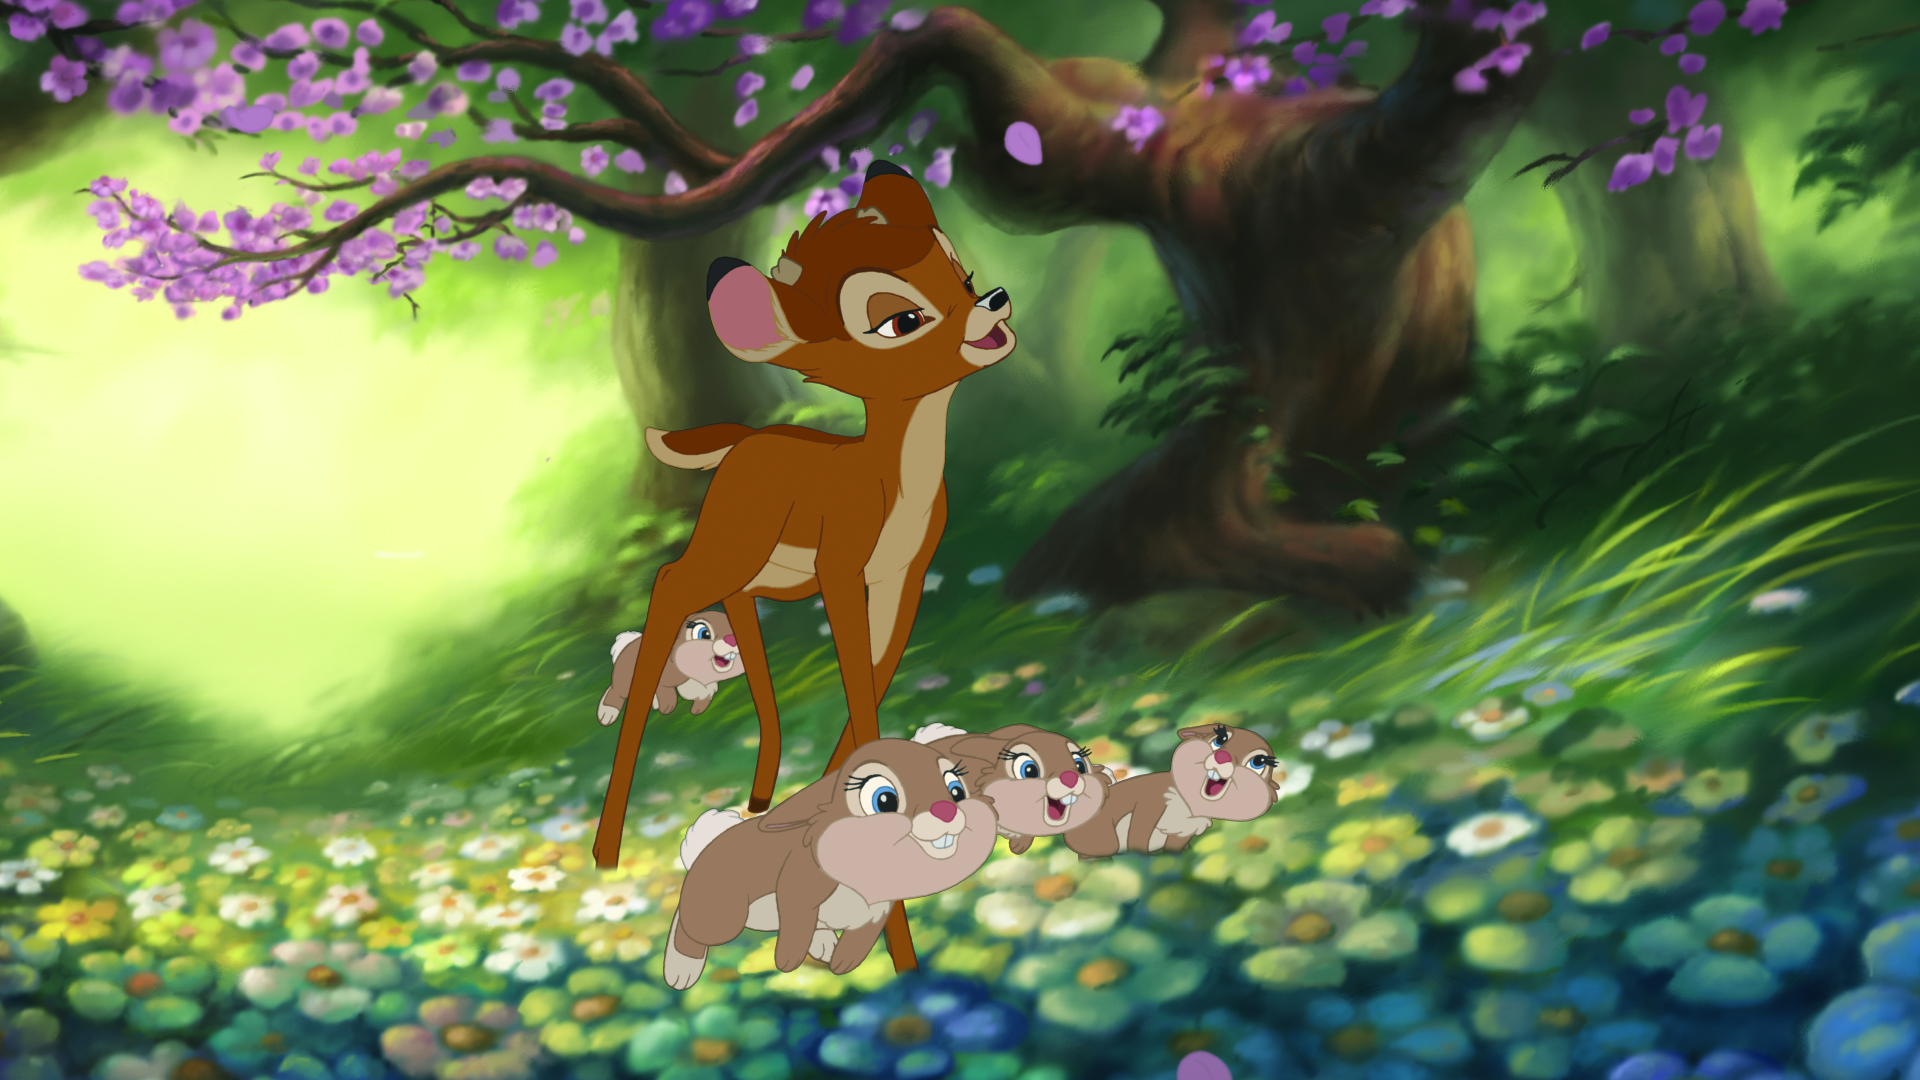 bambi wallpapers high quality download free